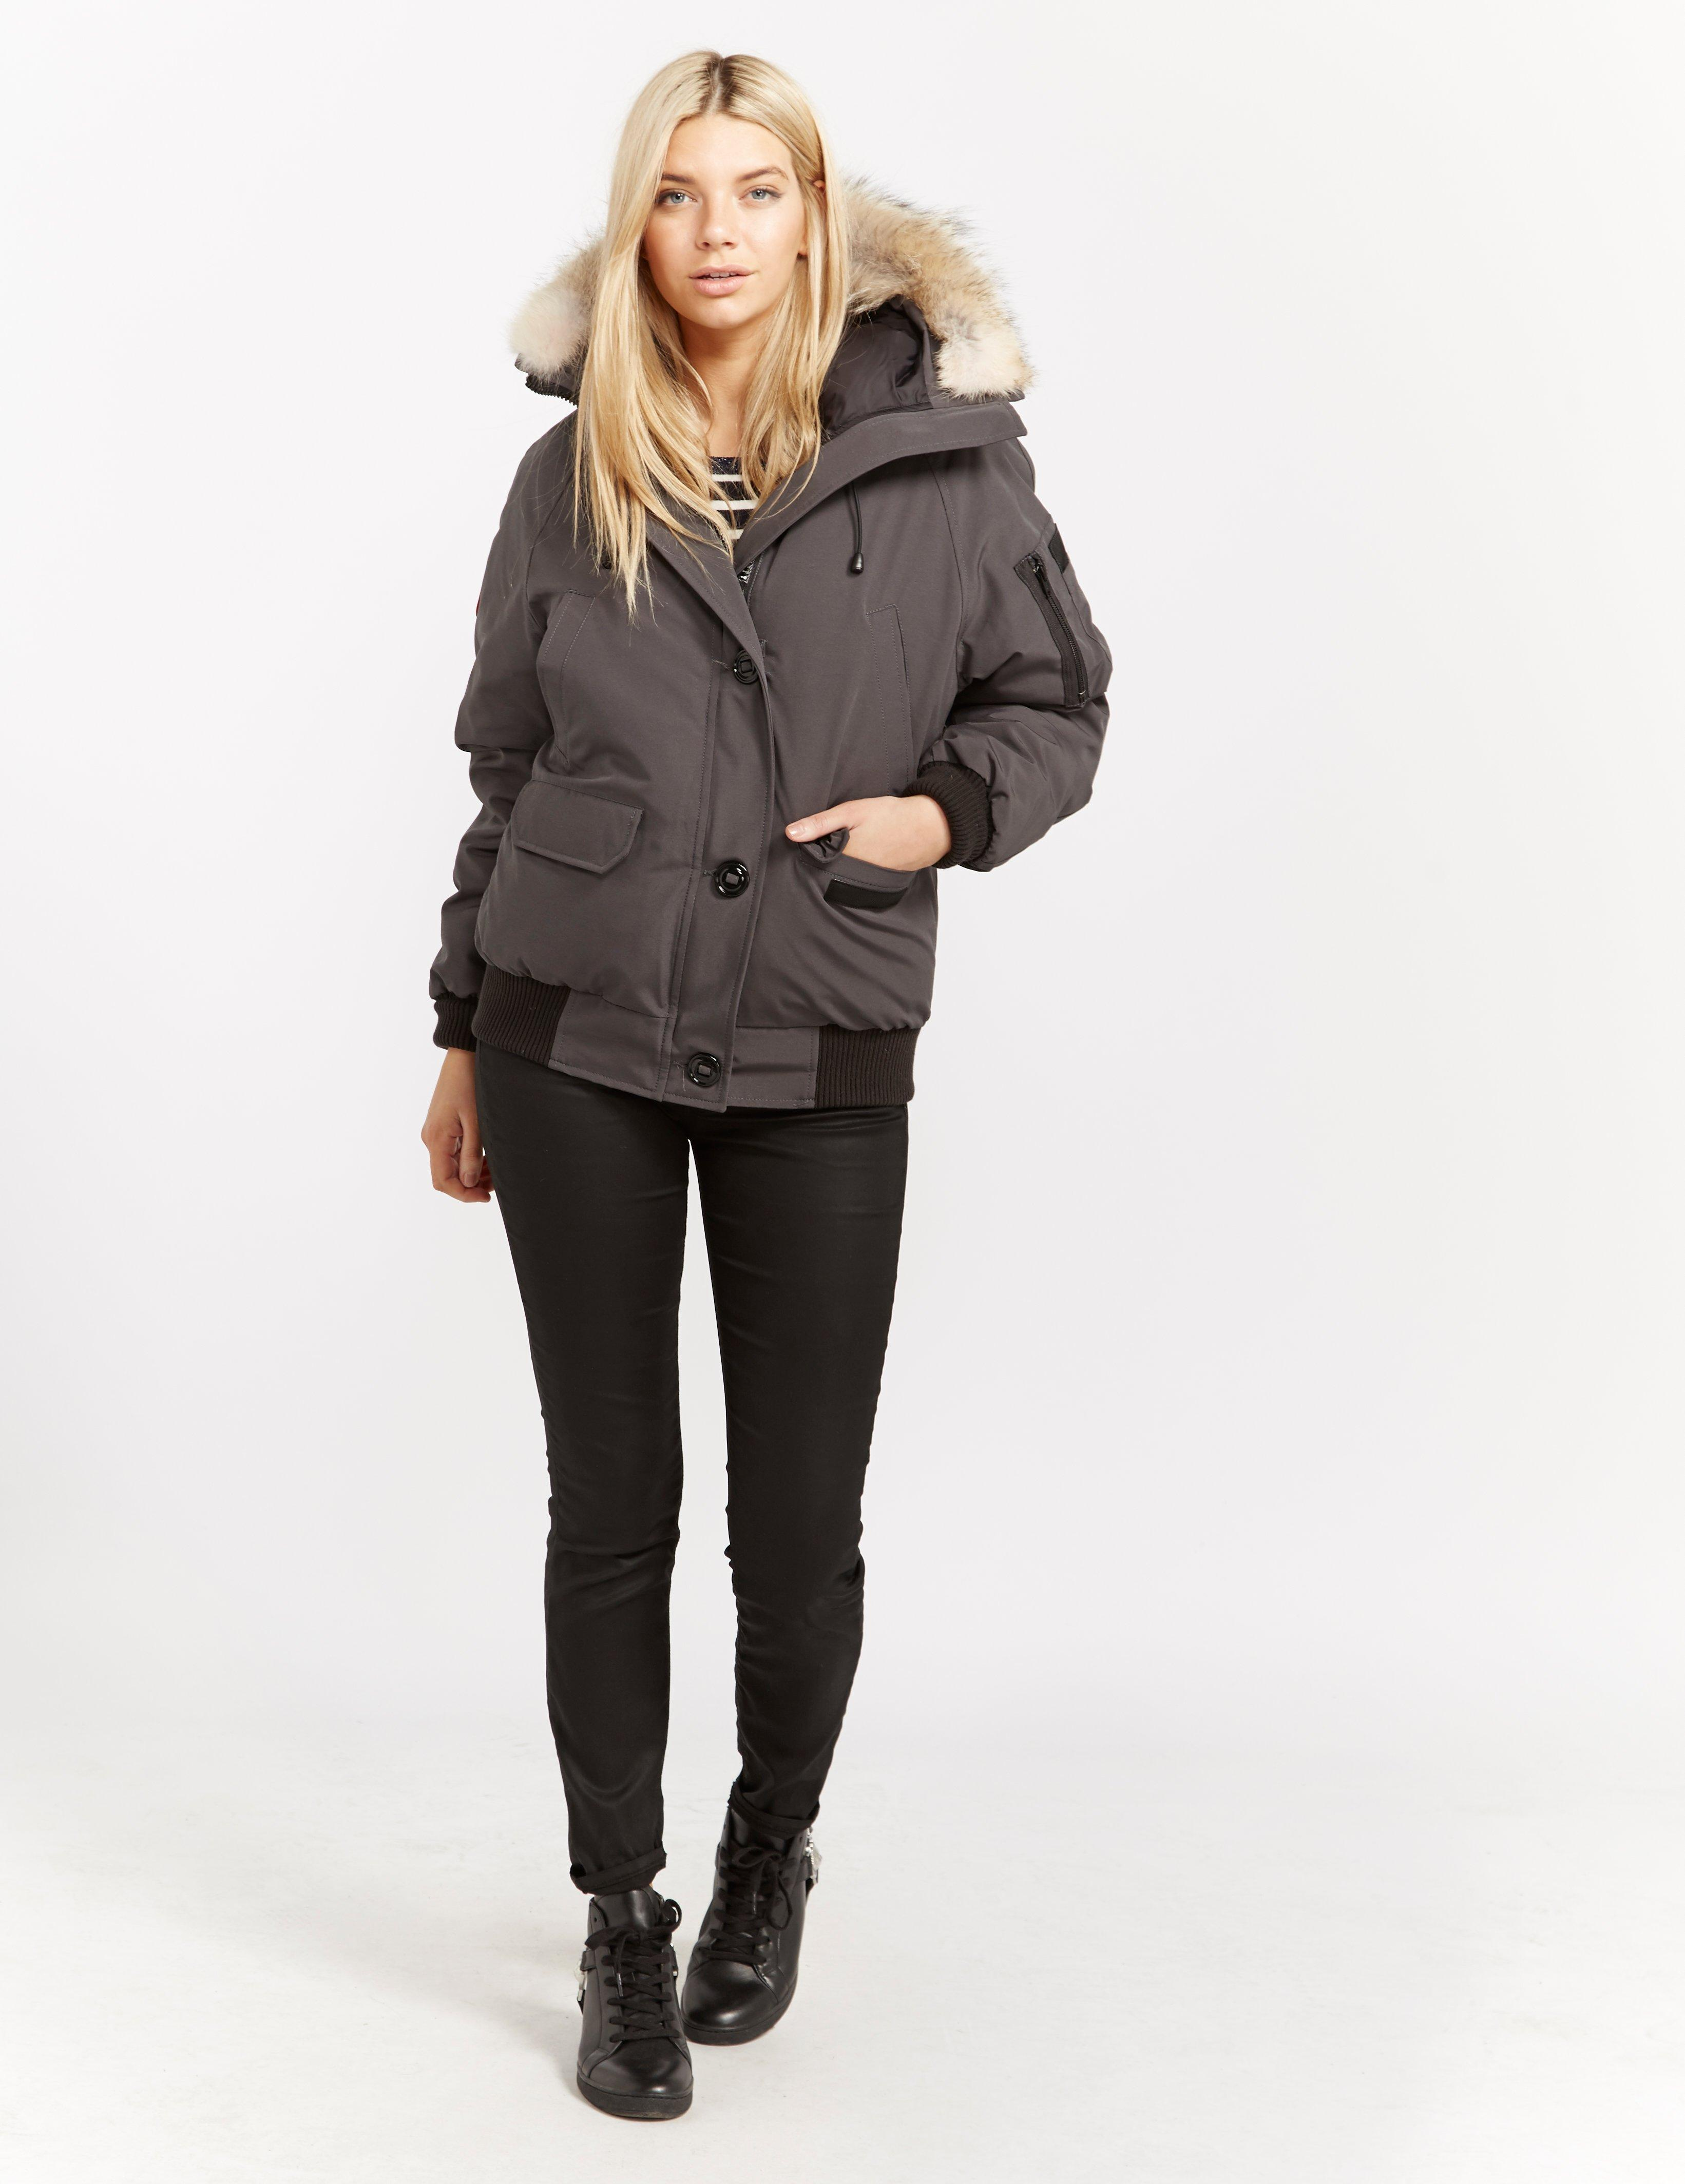 Canada Goose Womens Chilliwack Padded Bomber Jacket Grey in Gray - Lyst 05a02e3370